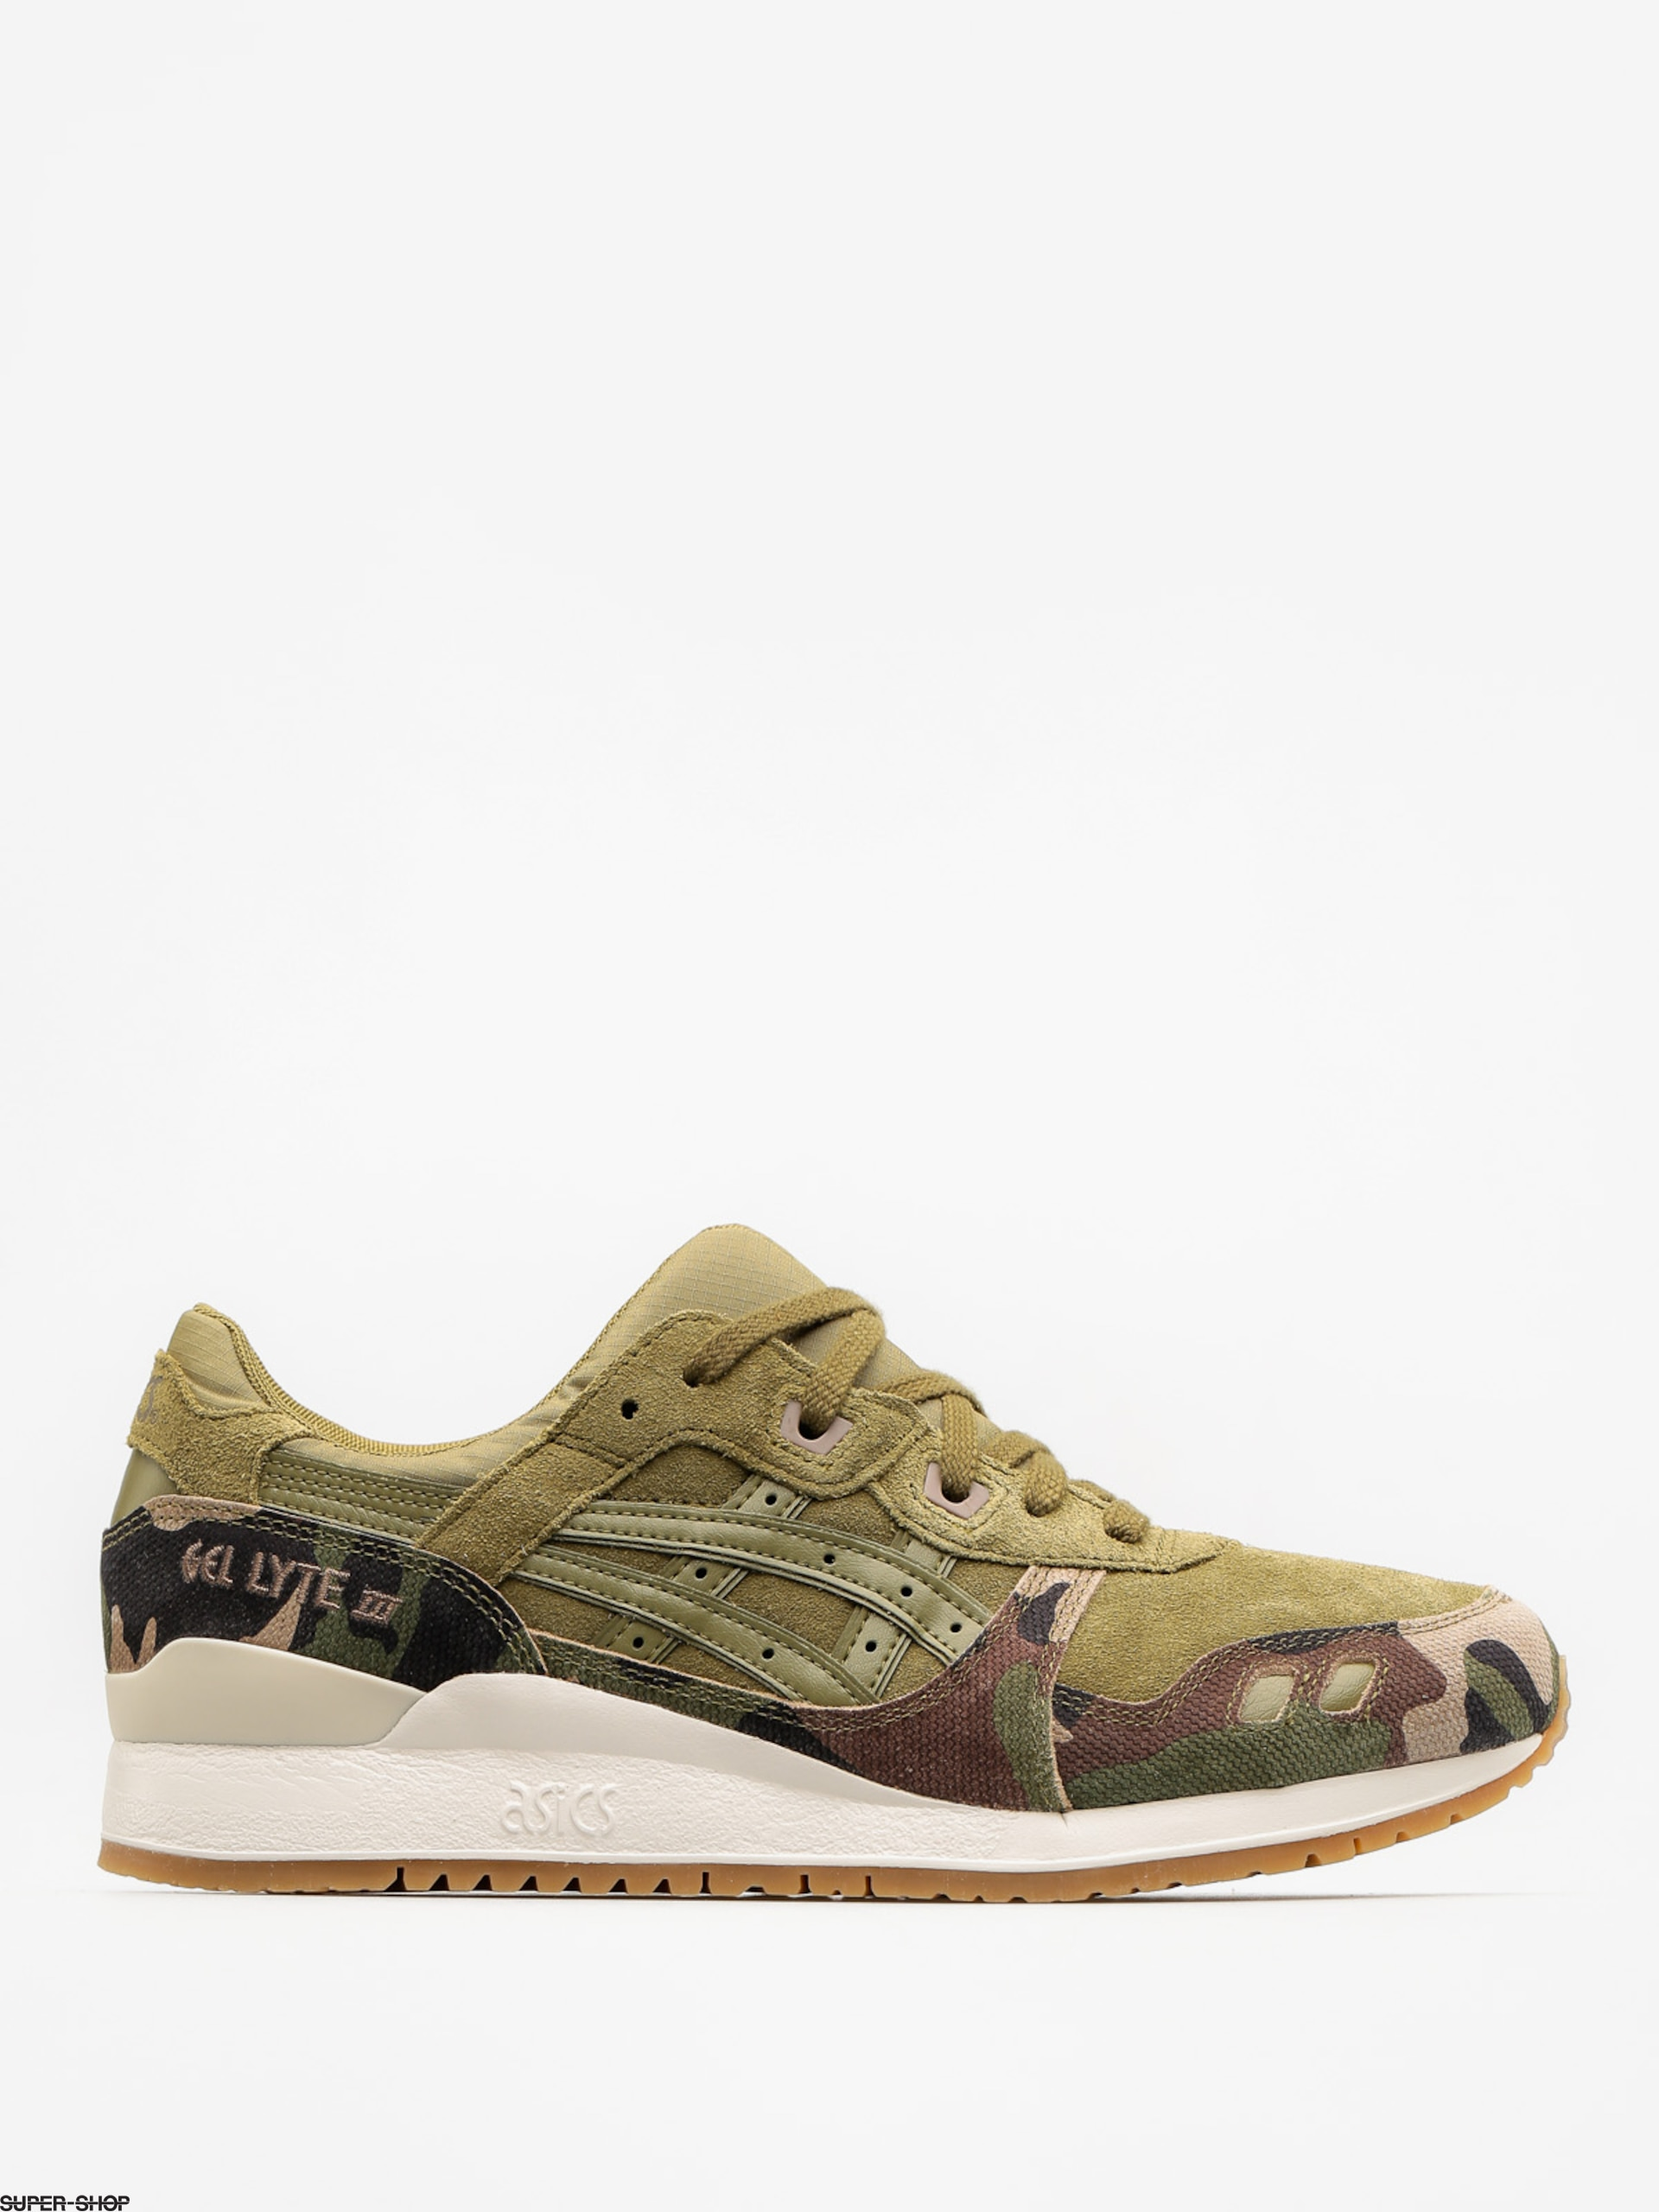 ASICS Tiger Shoes Gel Lyte III (martini olive/martini olive)